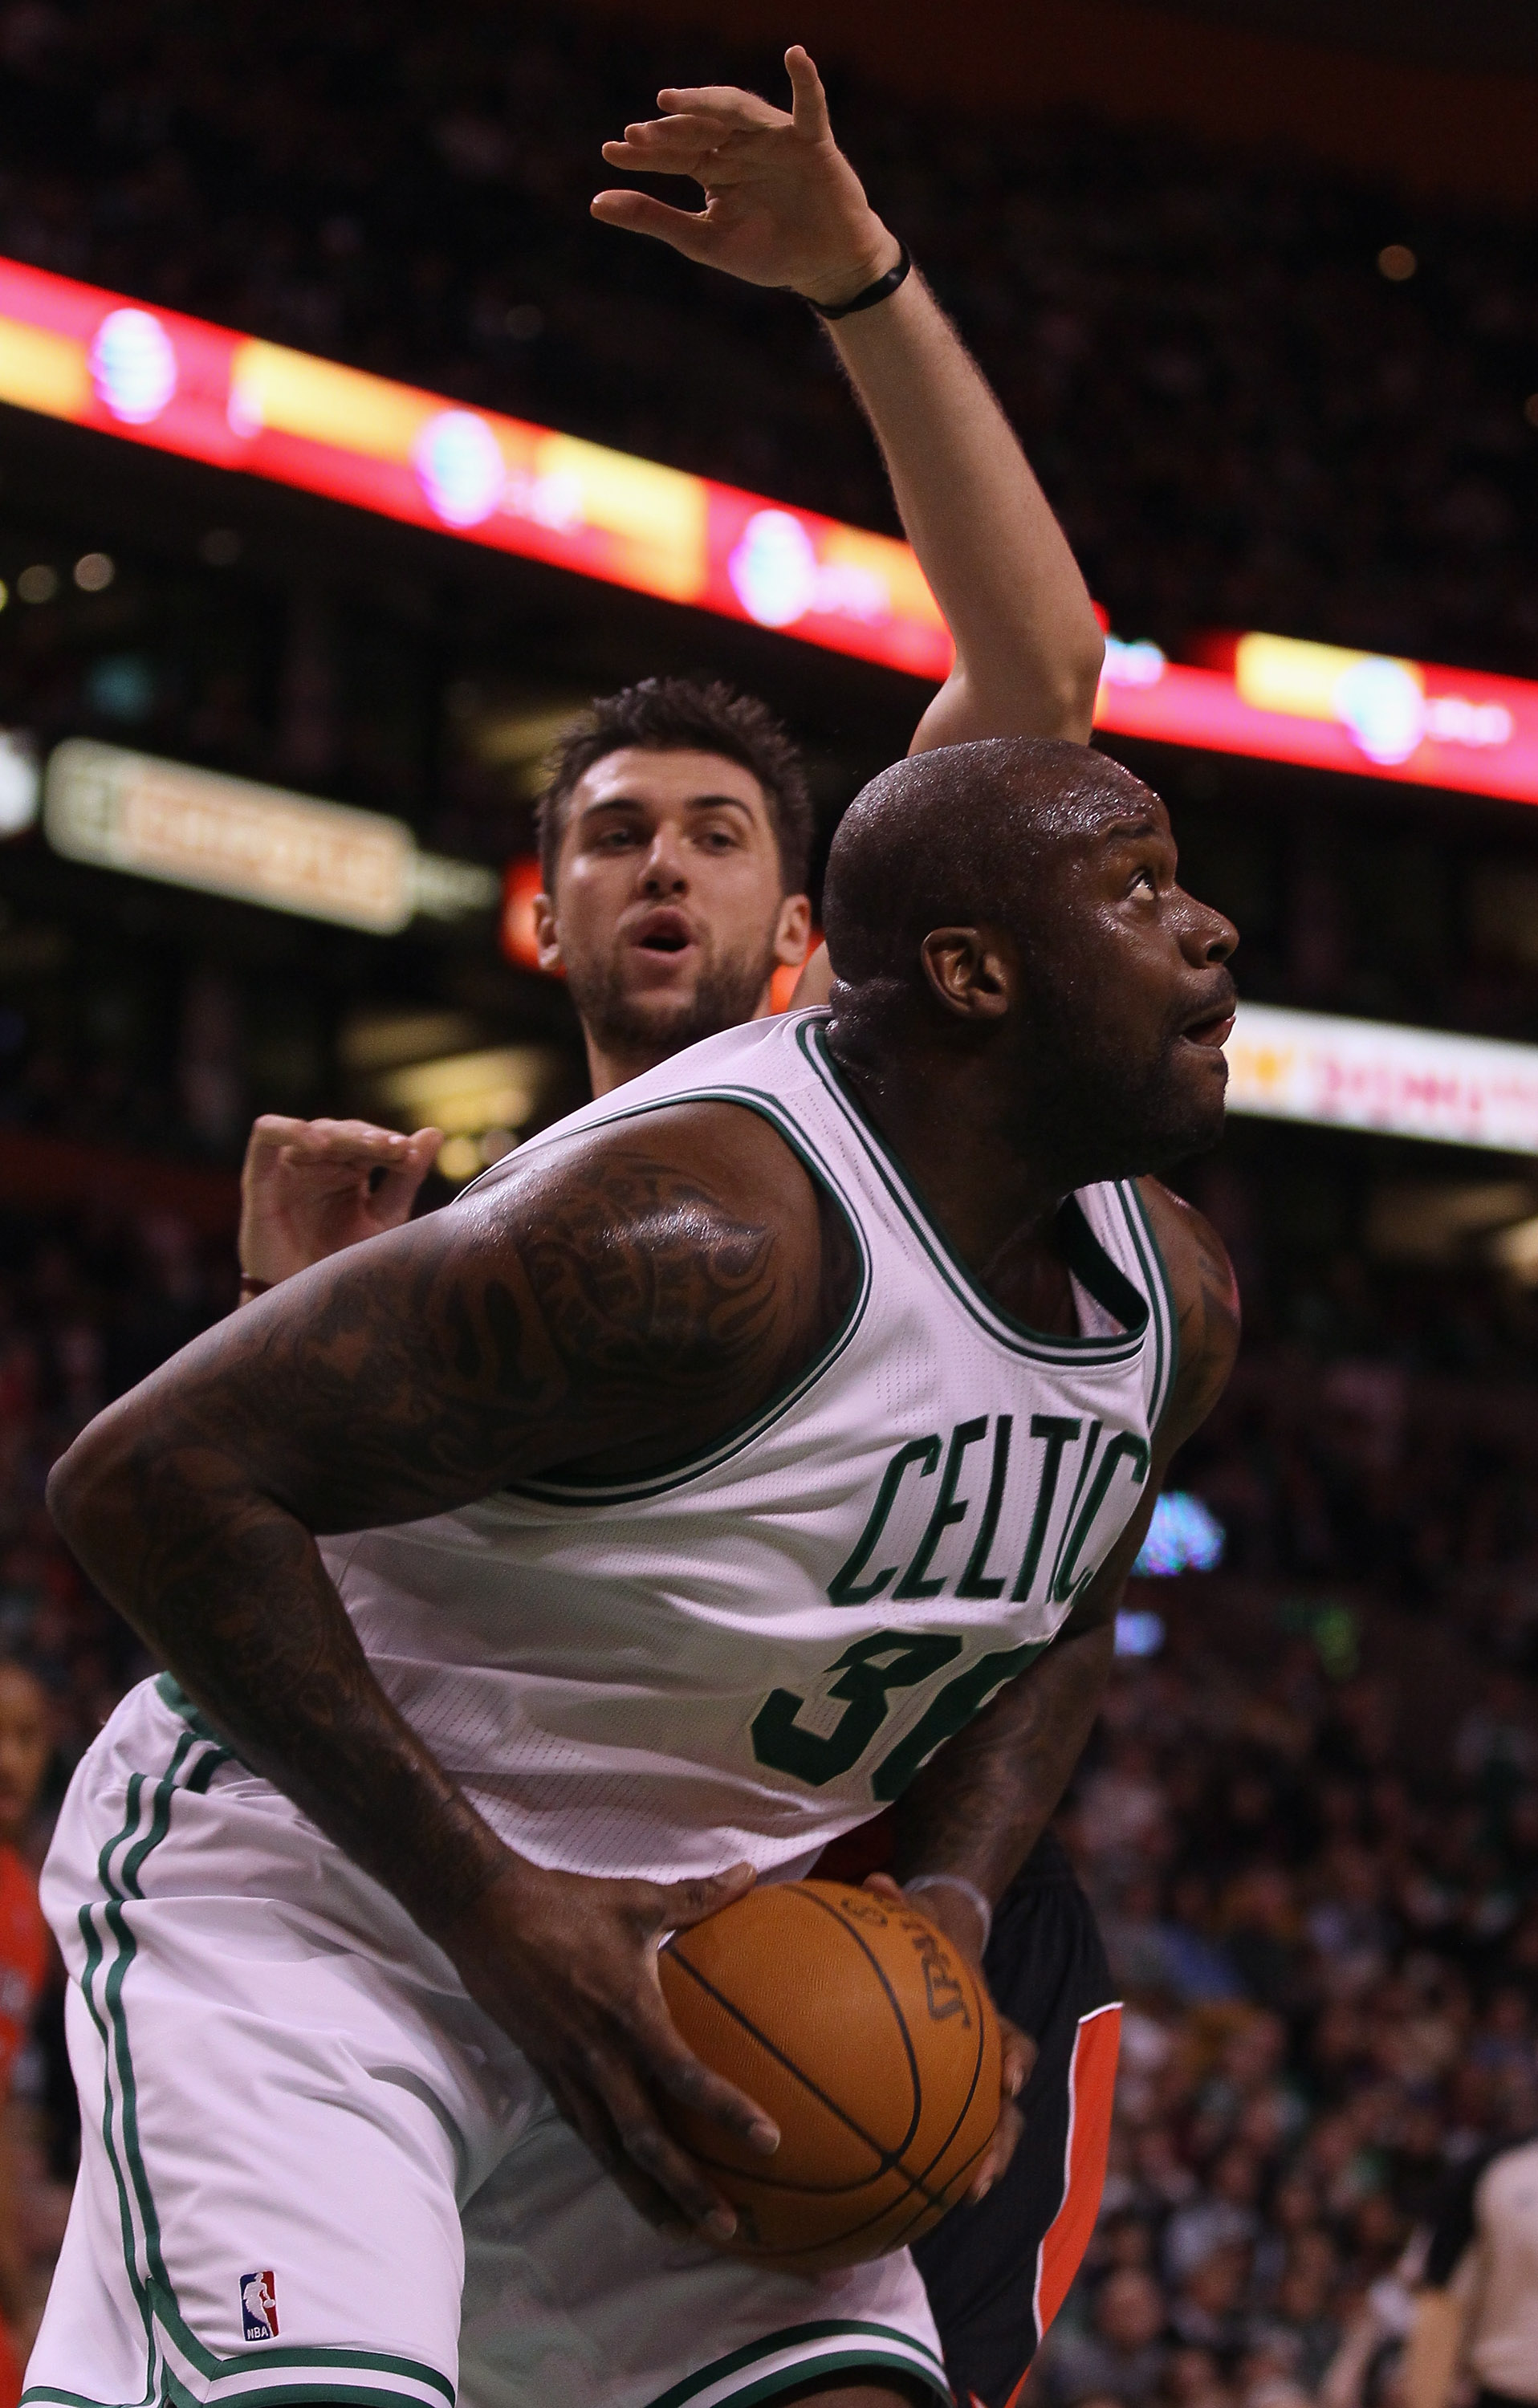 BOSTON, MA - JANUARY 07:  Shaquille O'Neal #36 of the Boston Celtics heads for the basket as Andrea Bargnani #7 of the Toronto Raptors defends on January 7, 2011 at the TD Garden in Boston, Massachusetts. NOTE TO USER: User expressly acknowledges and agre